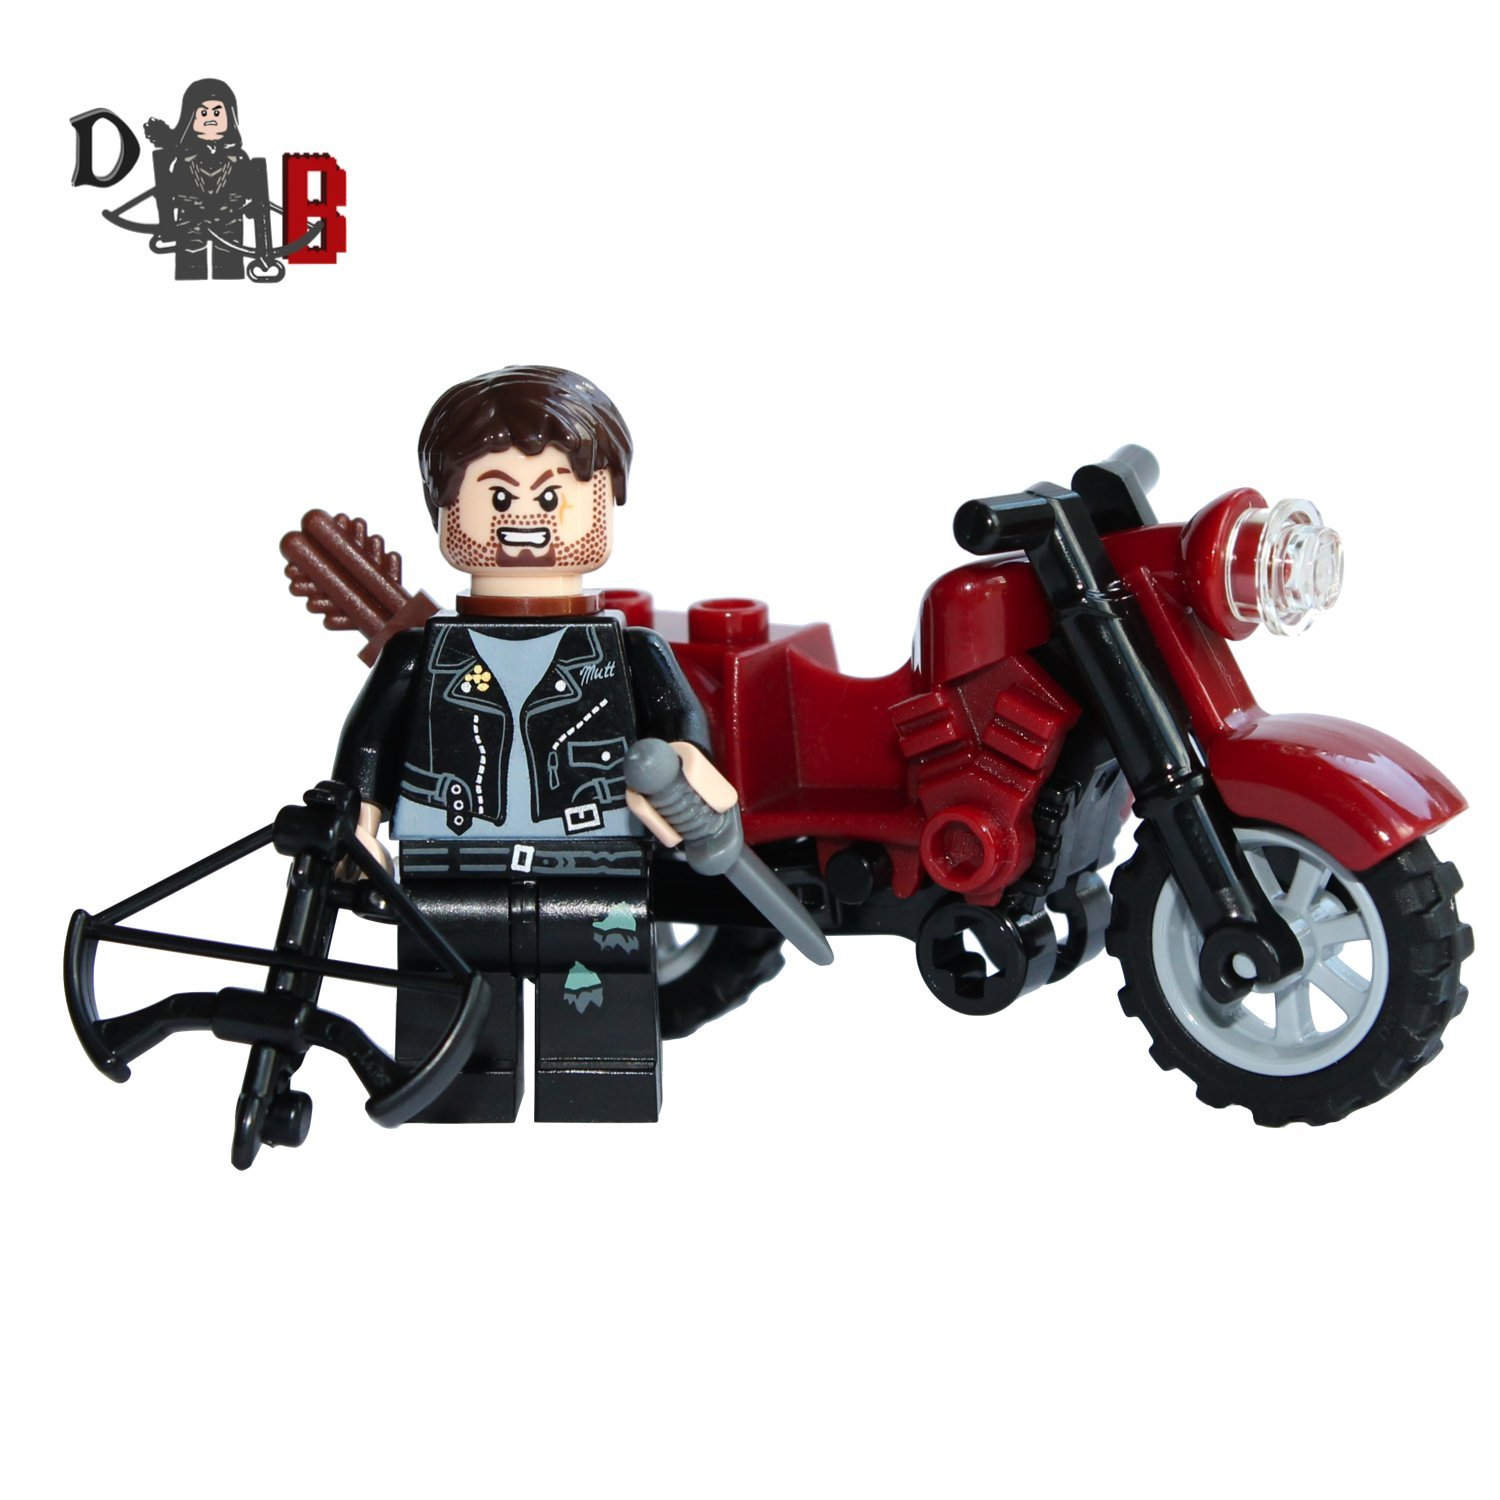 Walking dead lego daryl the walking - Amazon Com Custom The Walking Dead Daryl Dixon With Motorbike And Custom Made Crossbow Toys Games